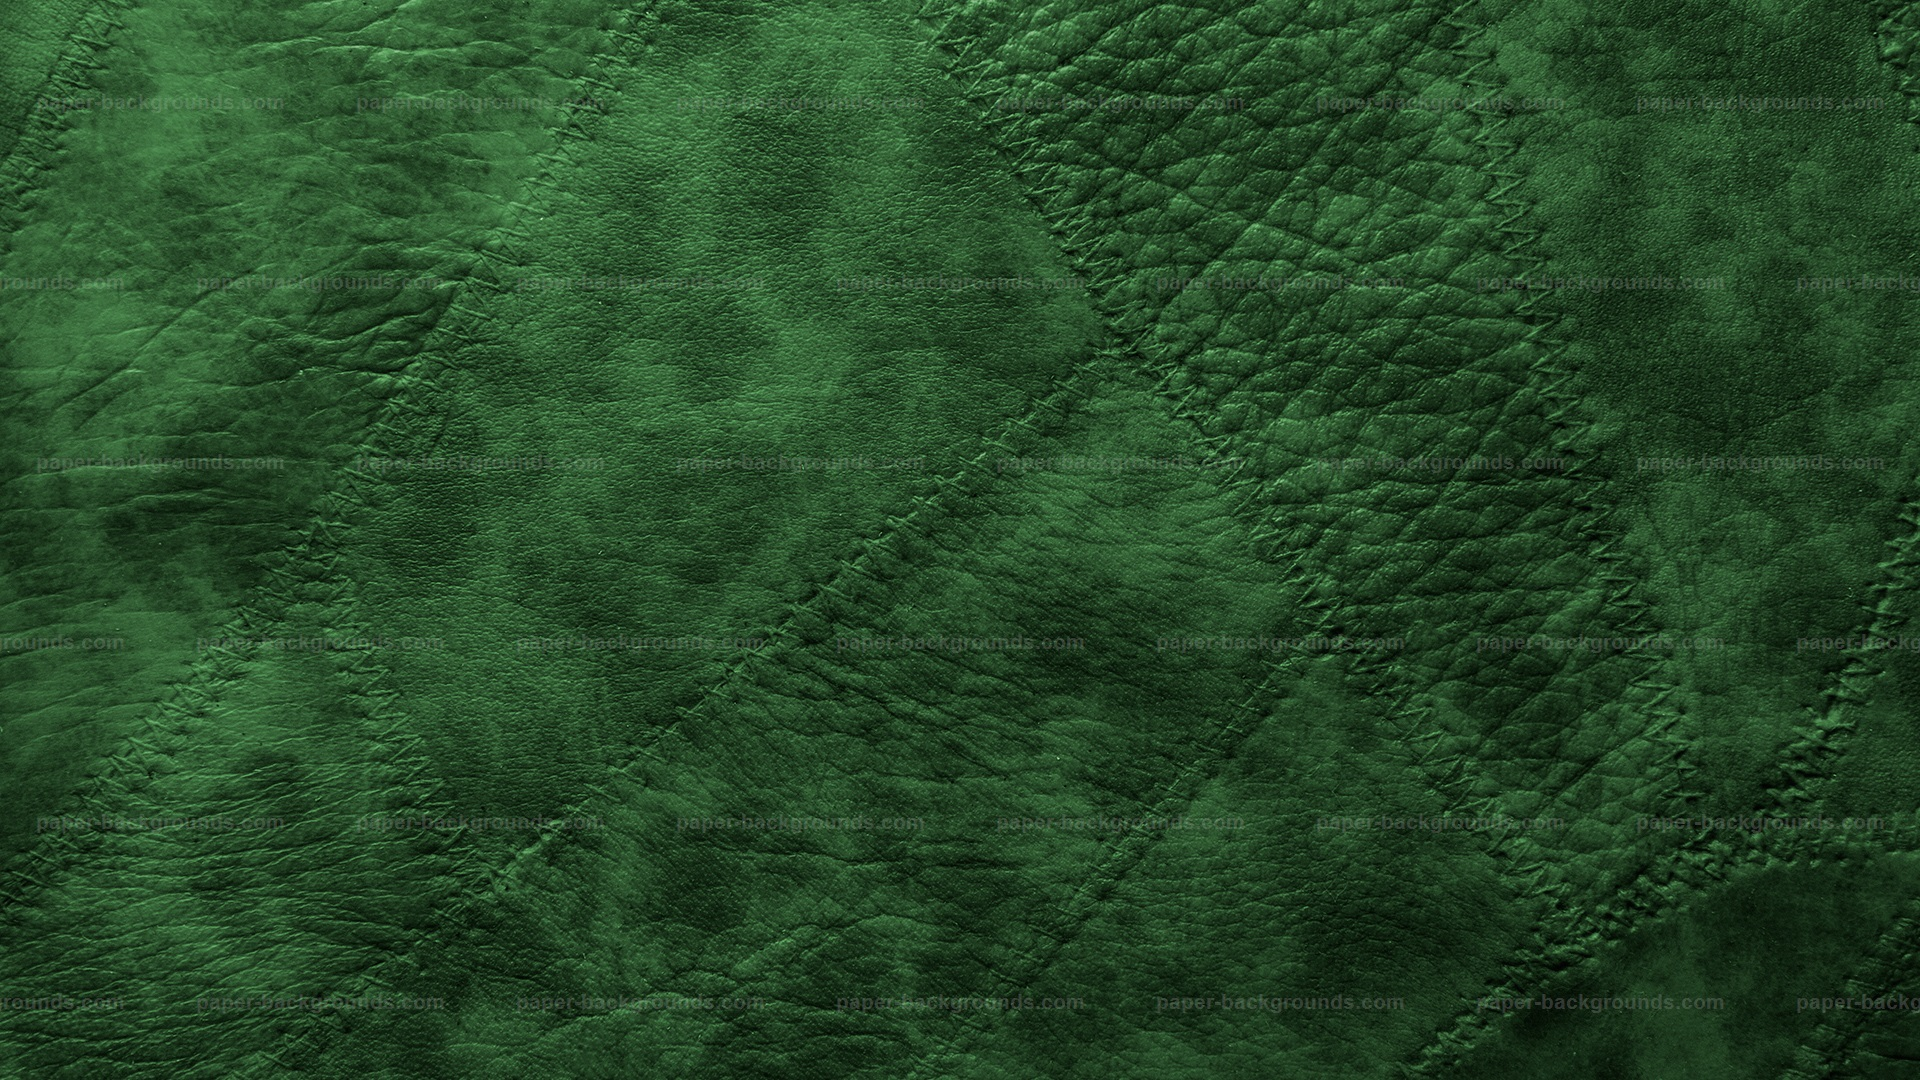 Green Stitched Leather Patches Background HD